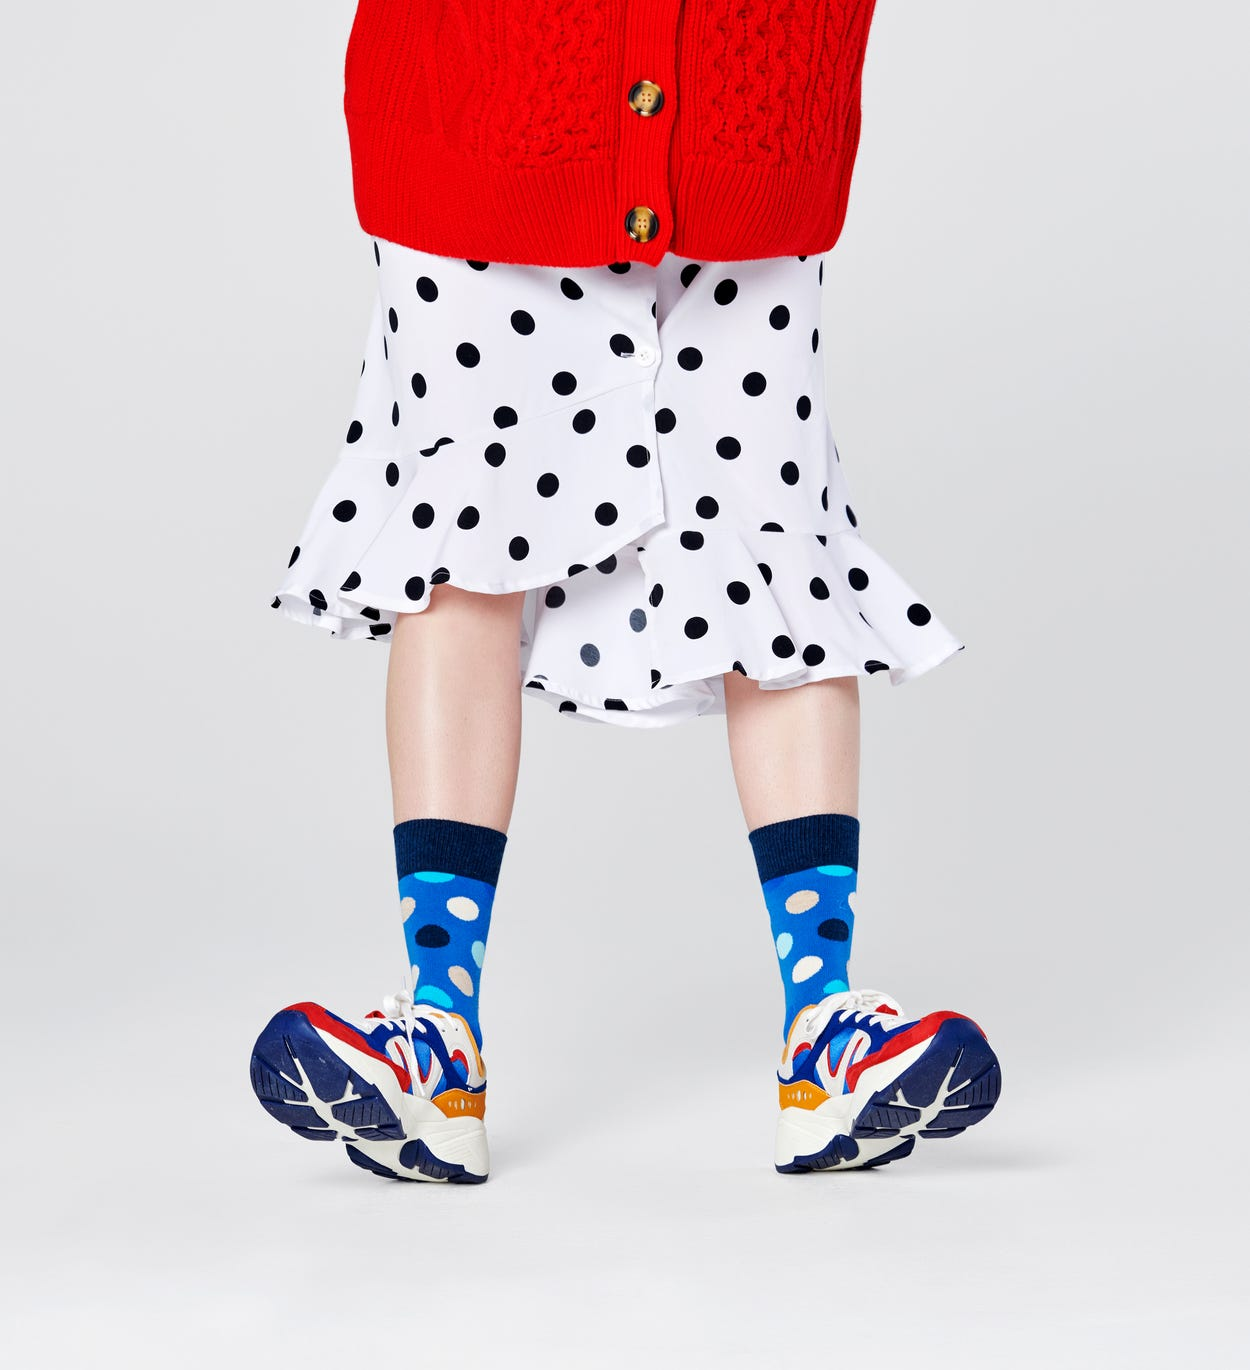 Big Dot Socken, Blau | Happy Socks